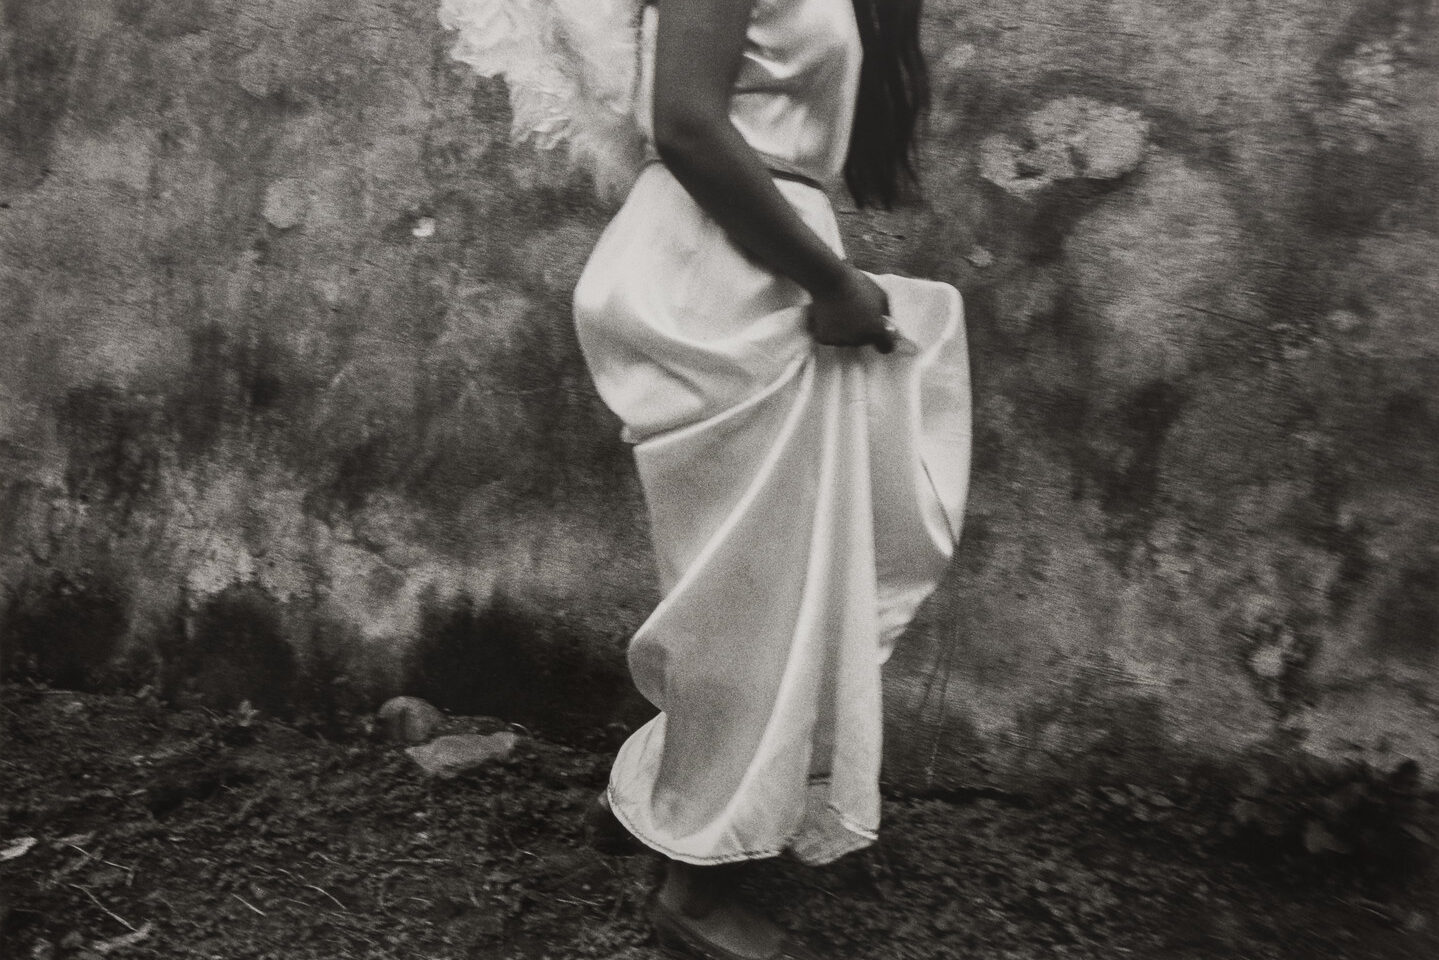 A black-and-white photograph of a woman in profile from the shoulders down with feathery white wings on her back walking and hoisting up her silky white dress.